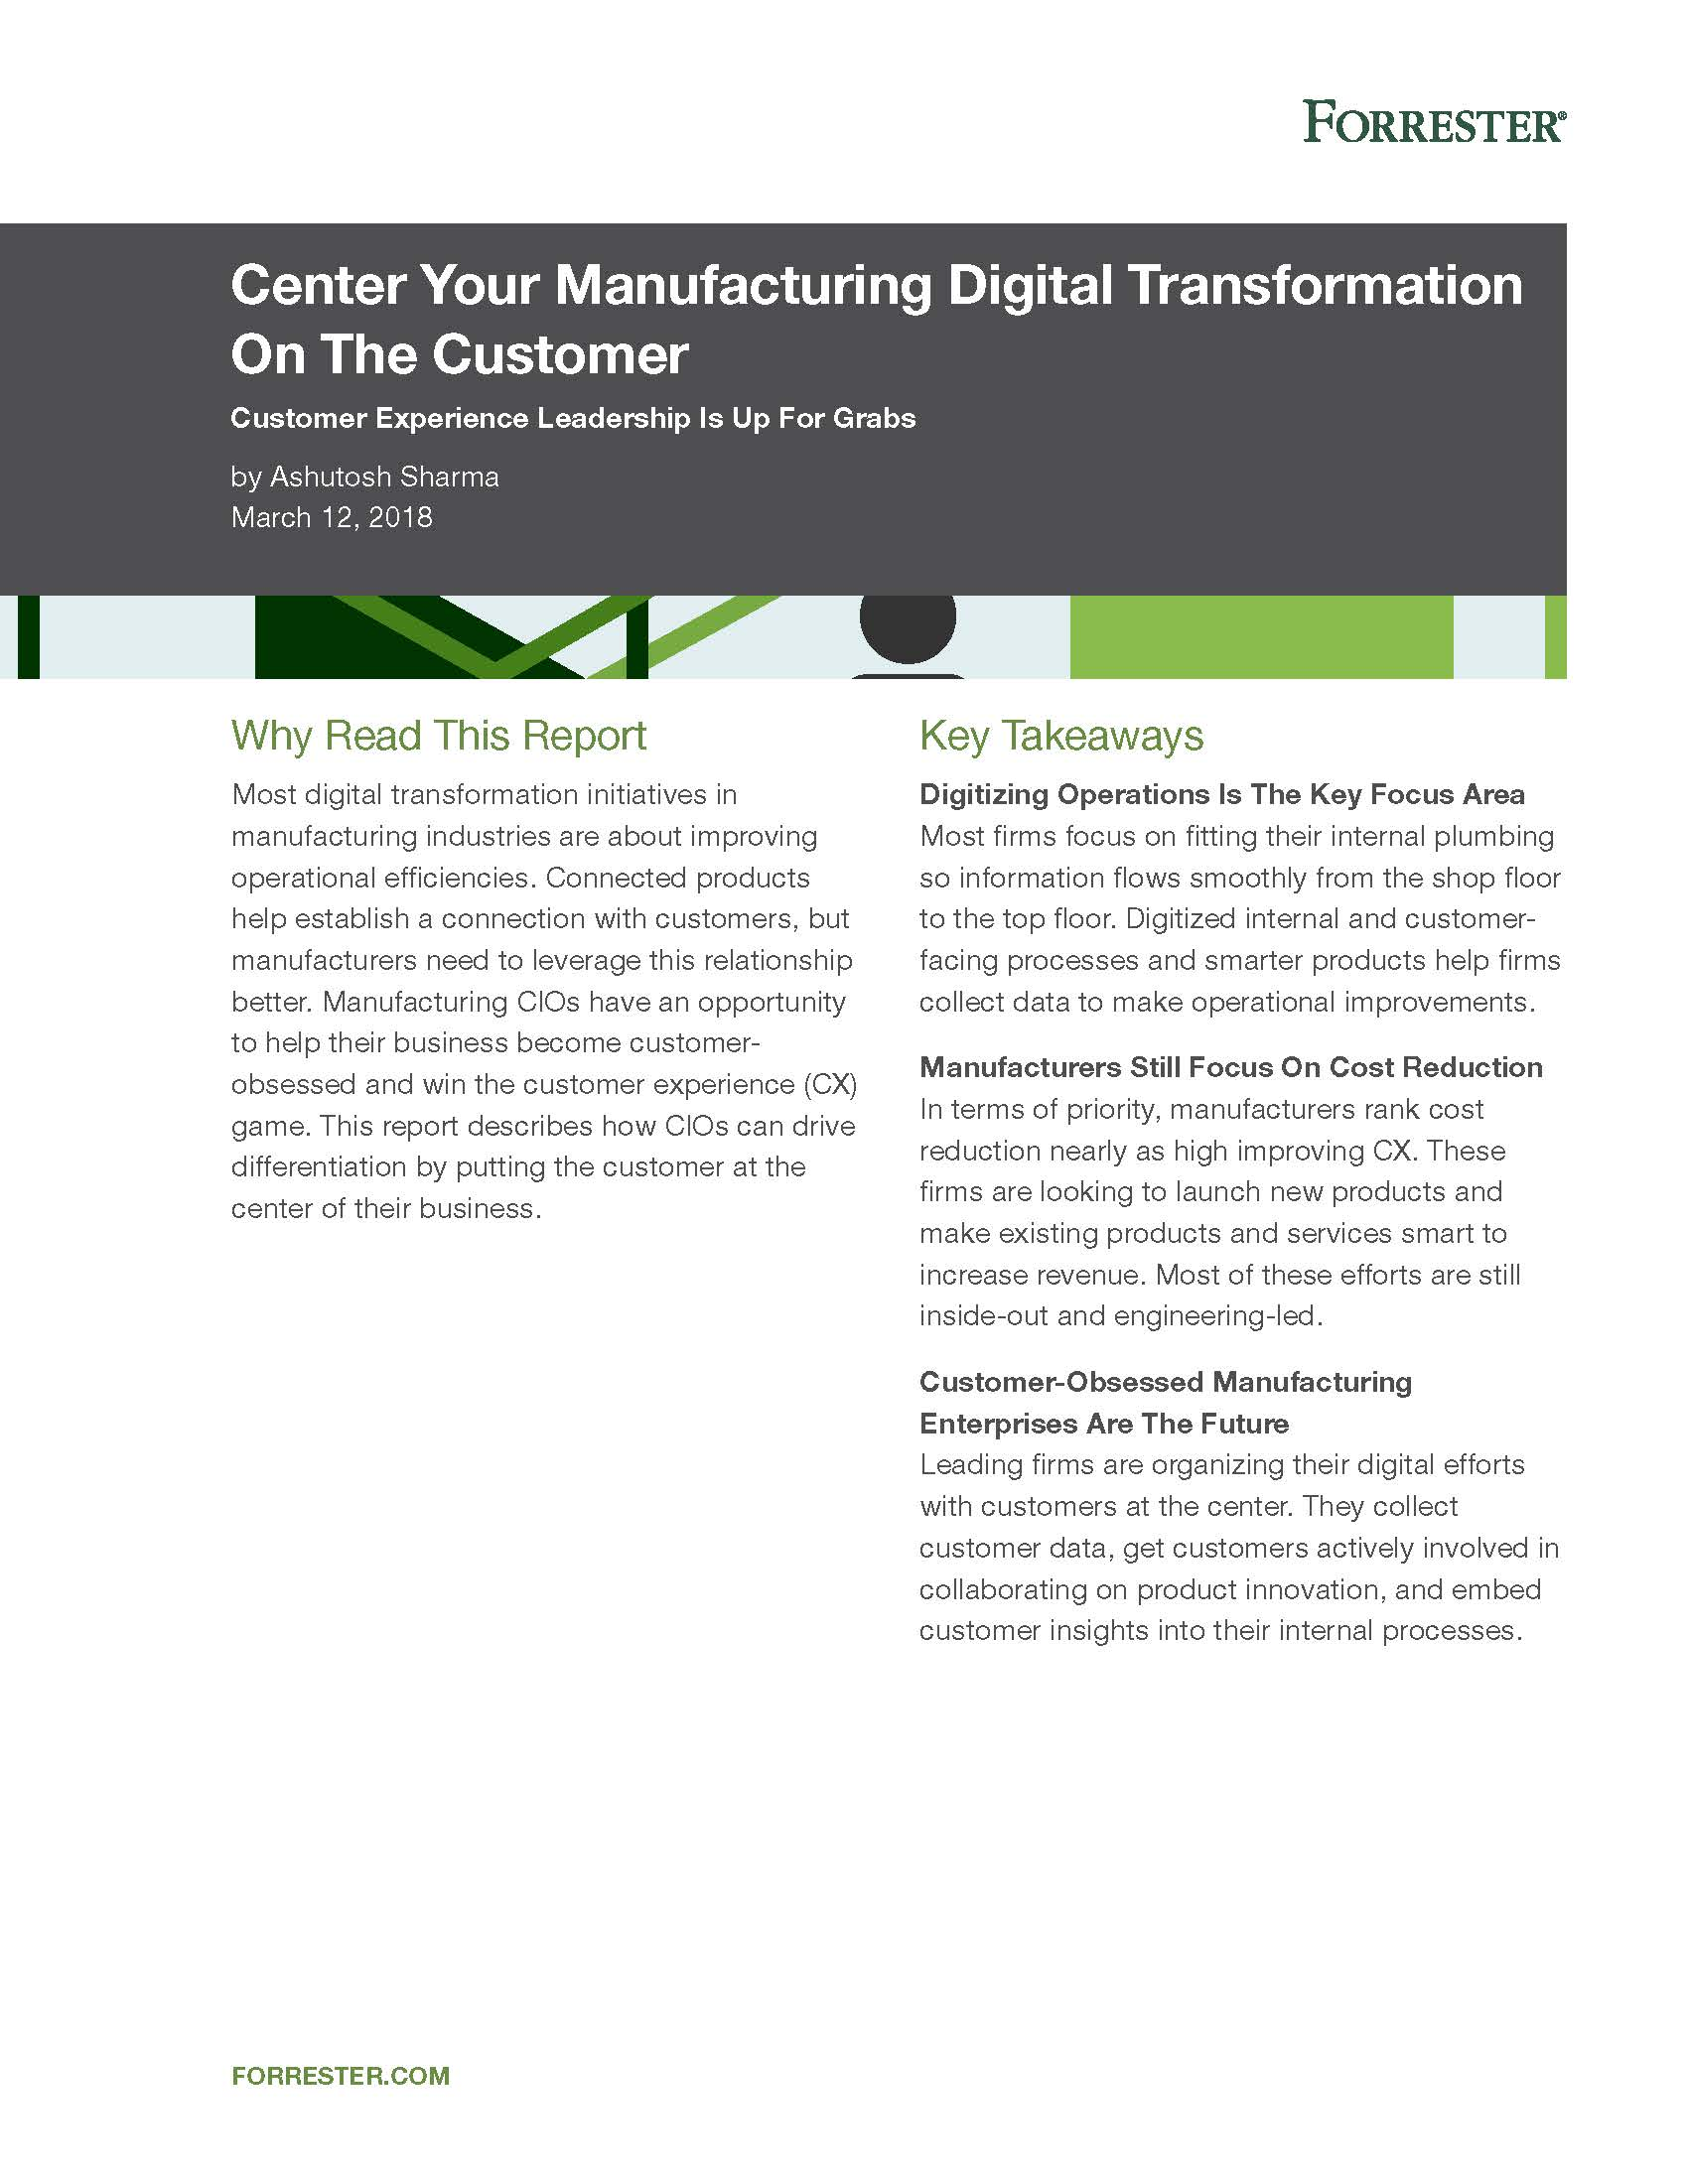 manufacturing-digital-transformation-customer-experience